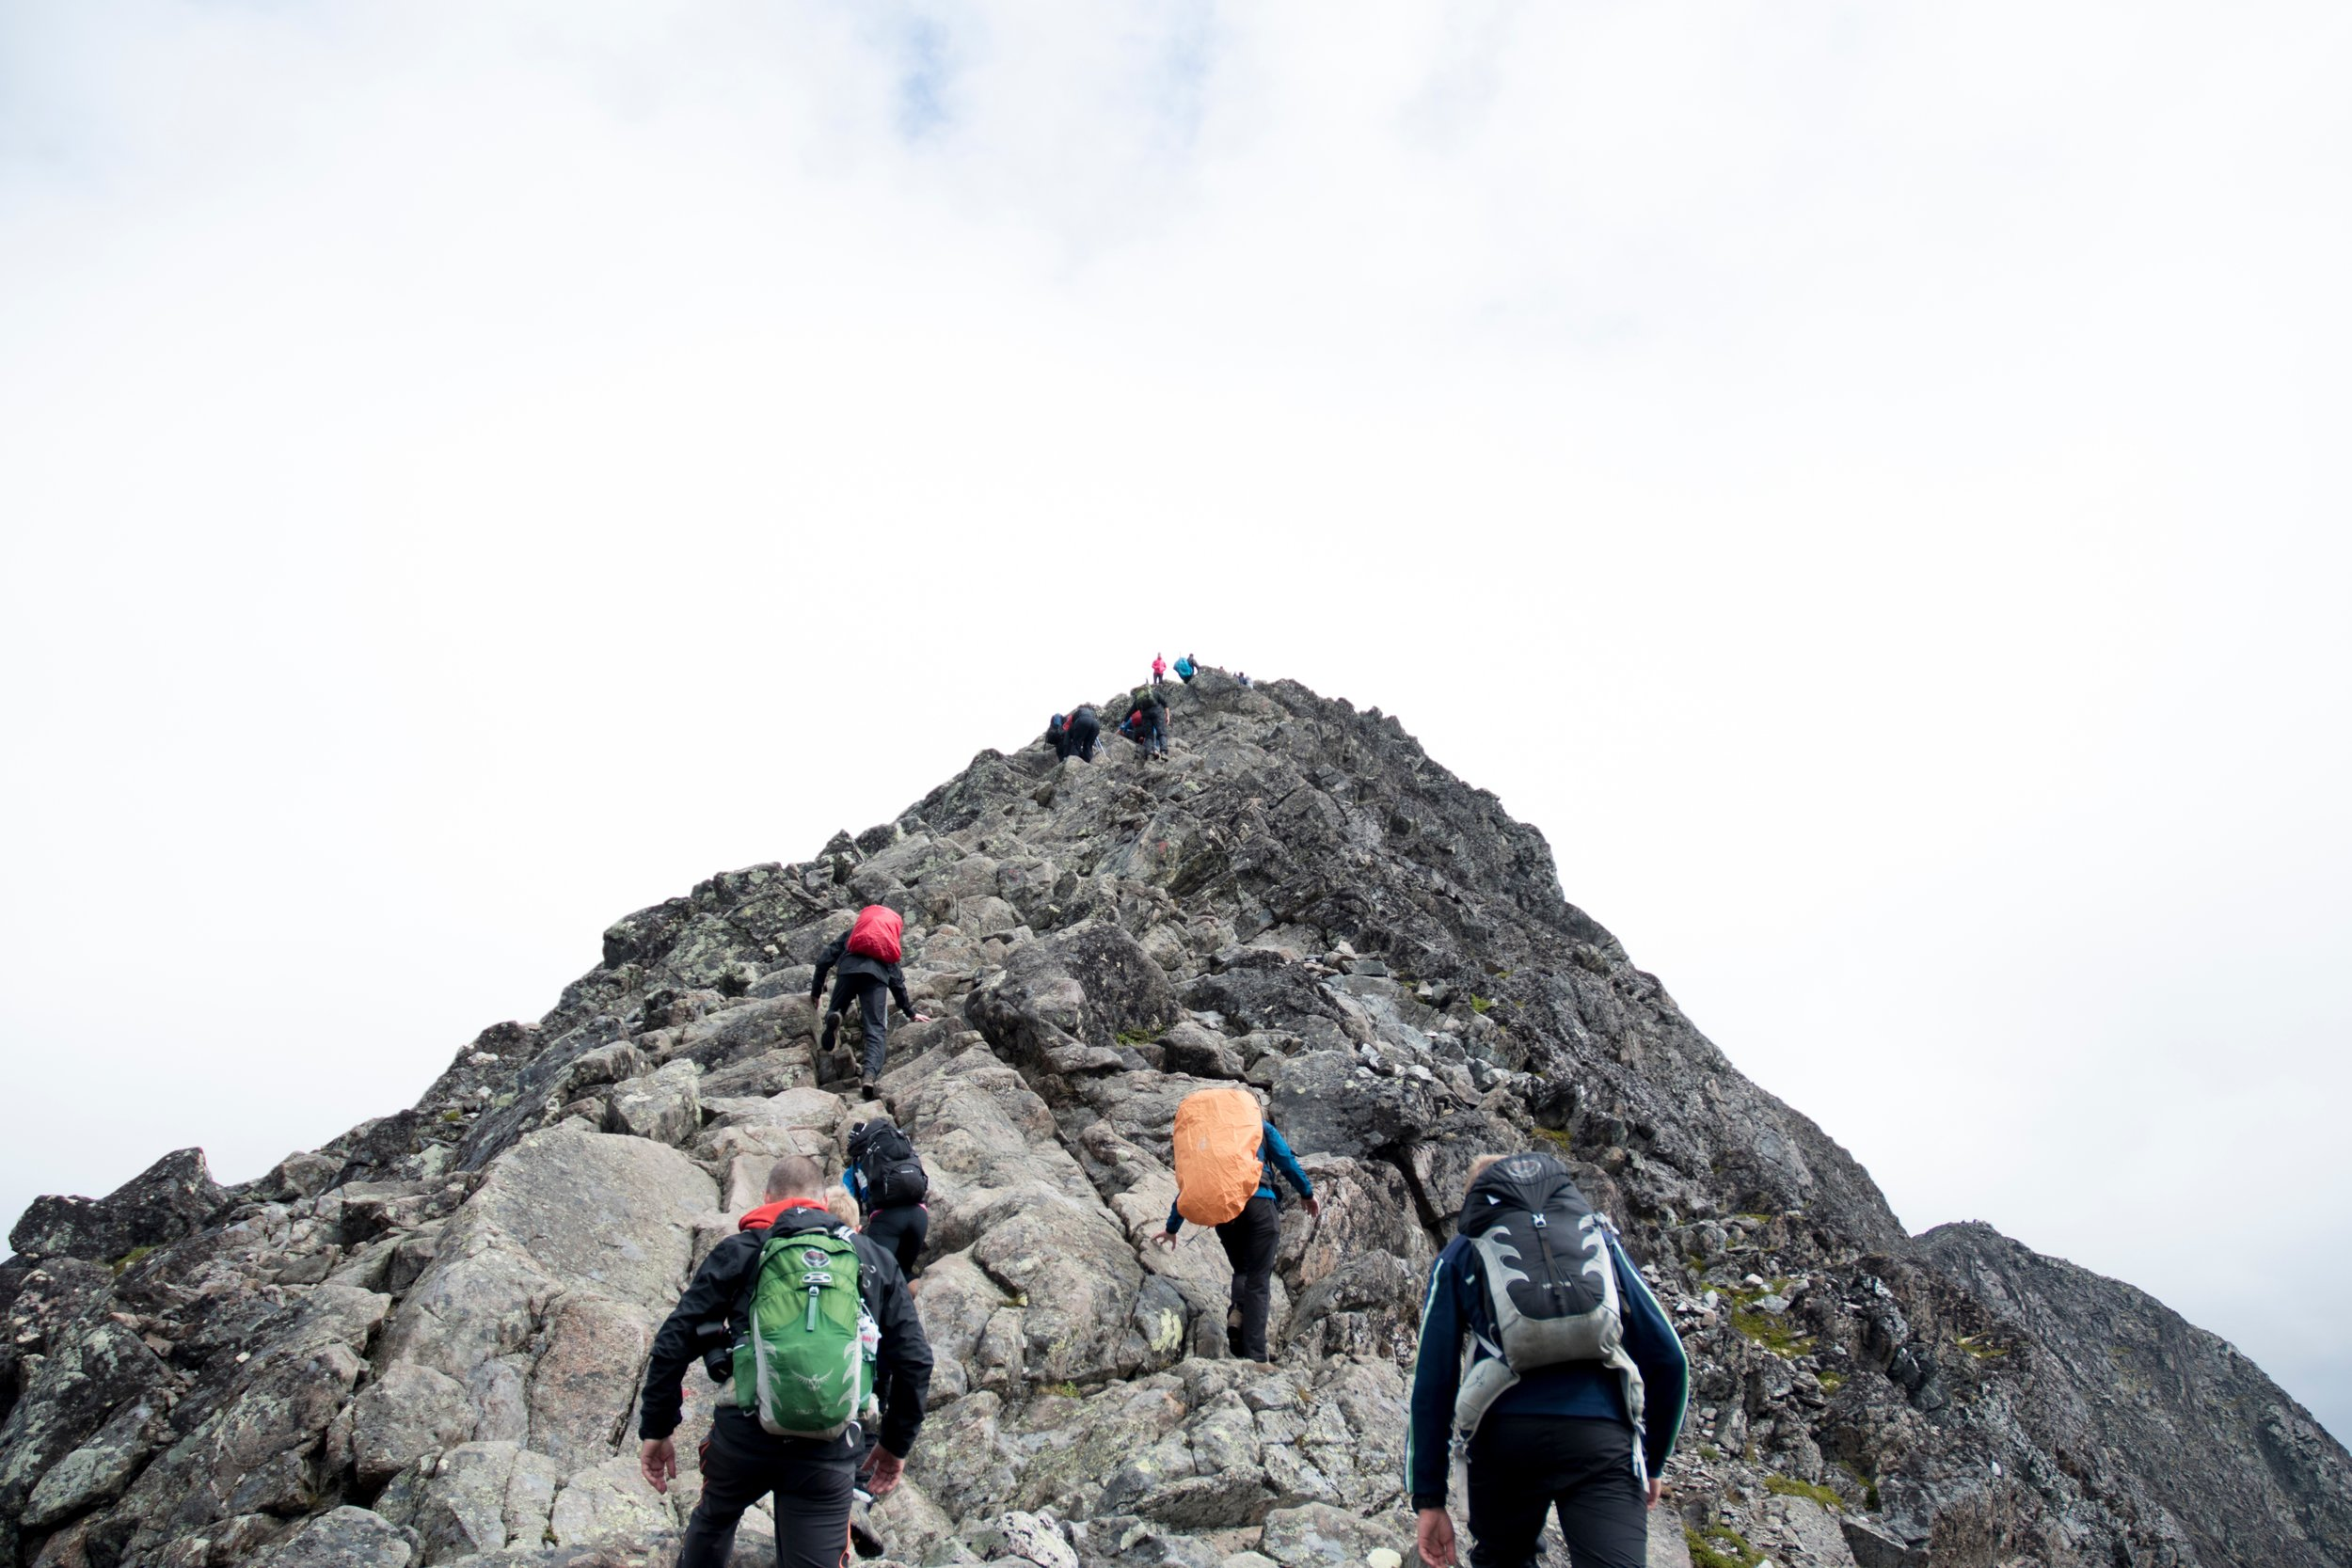 Would you climb a mountain with people you didn't like or trust?